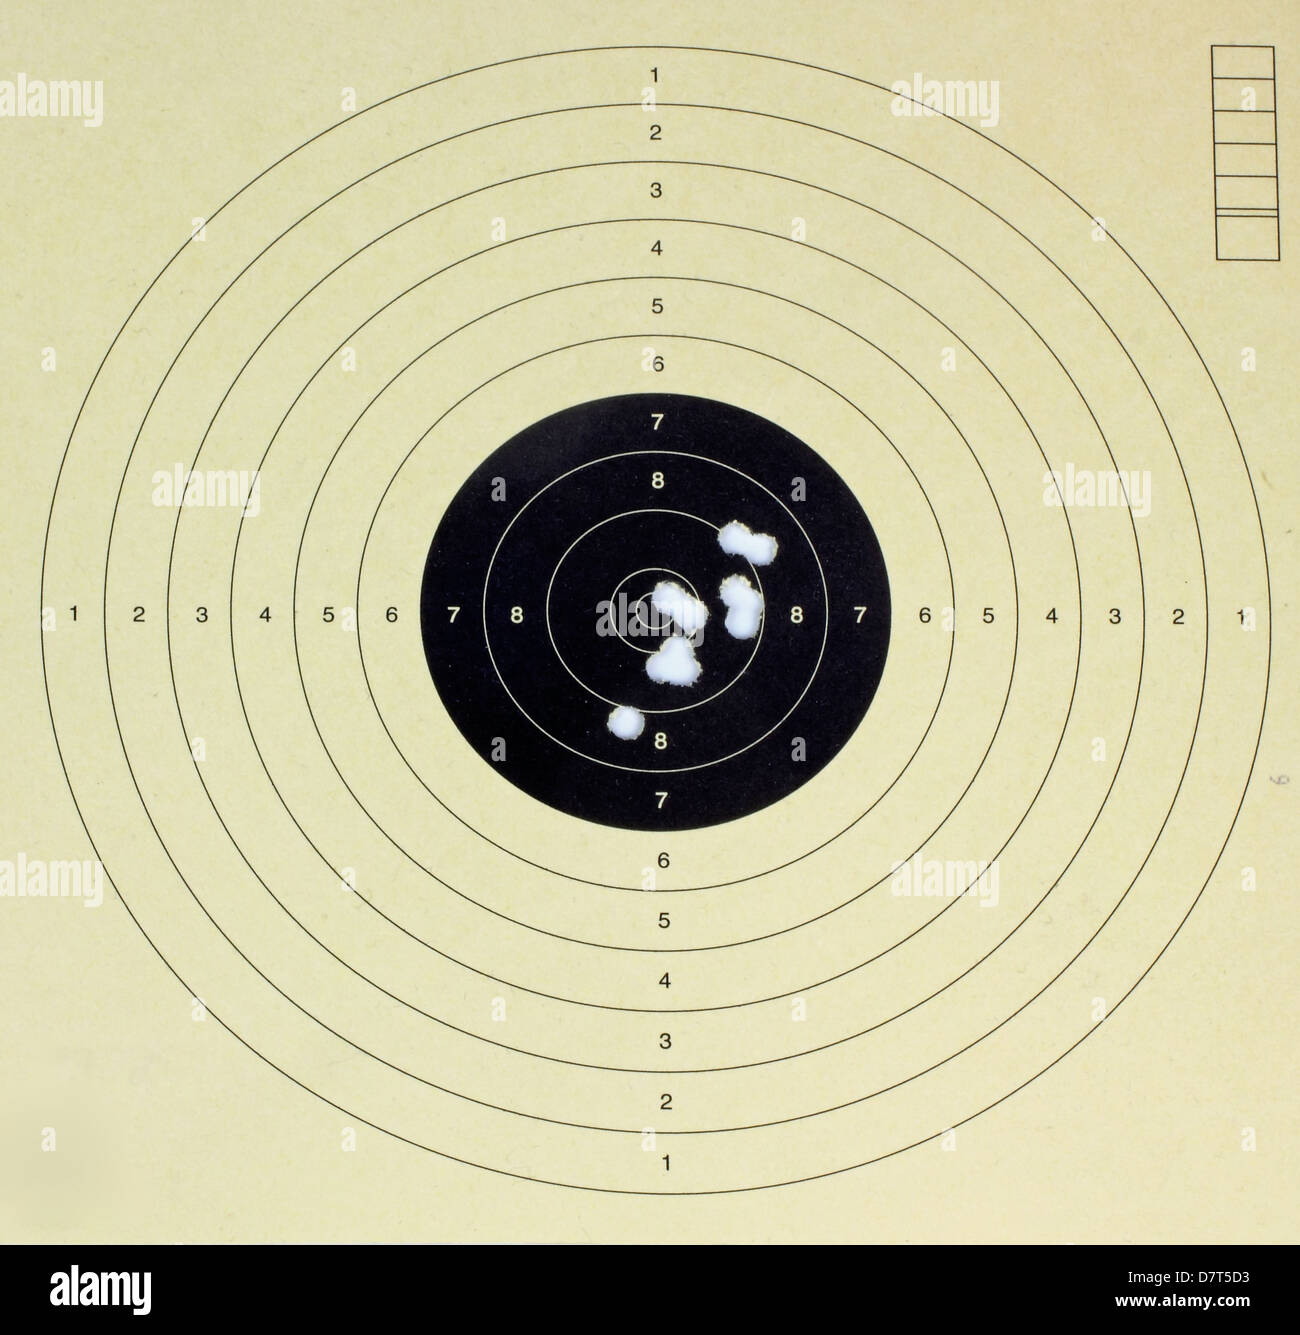 target with bullet holles - Stock Image